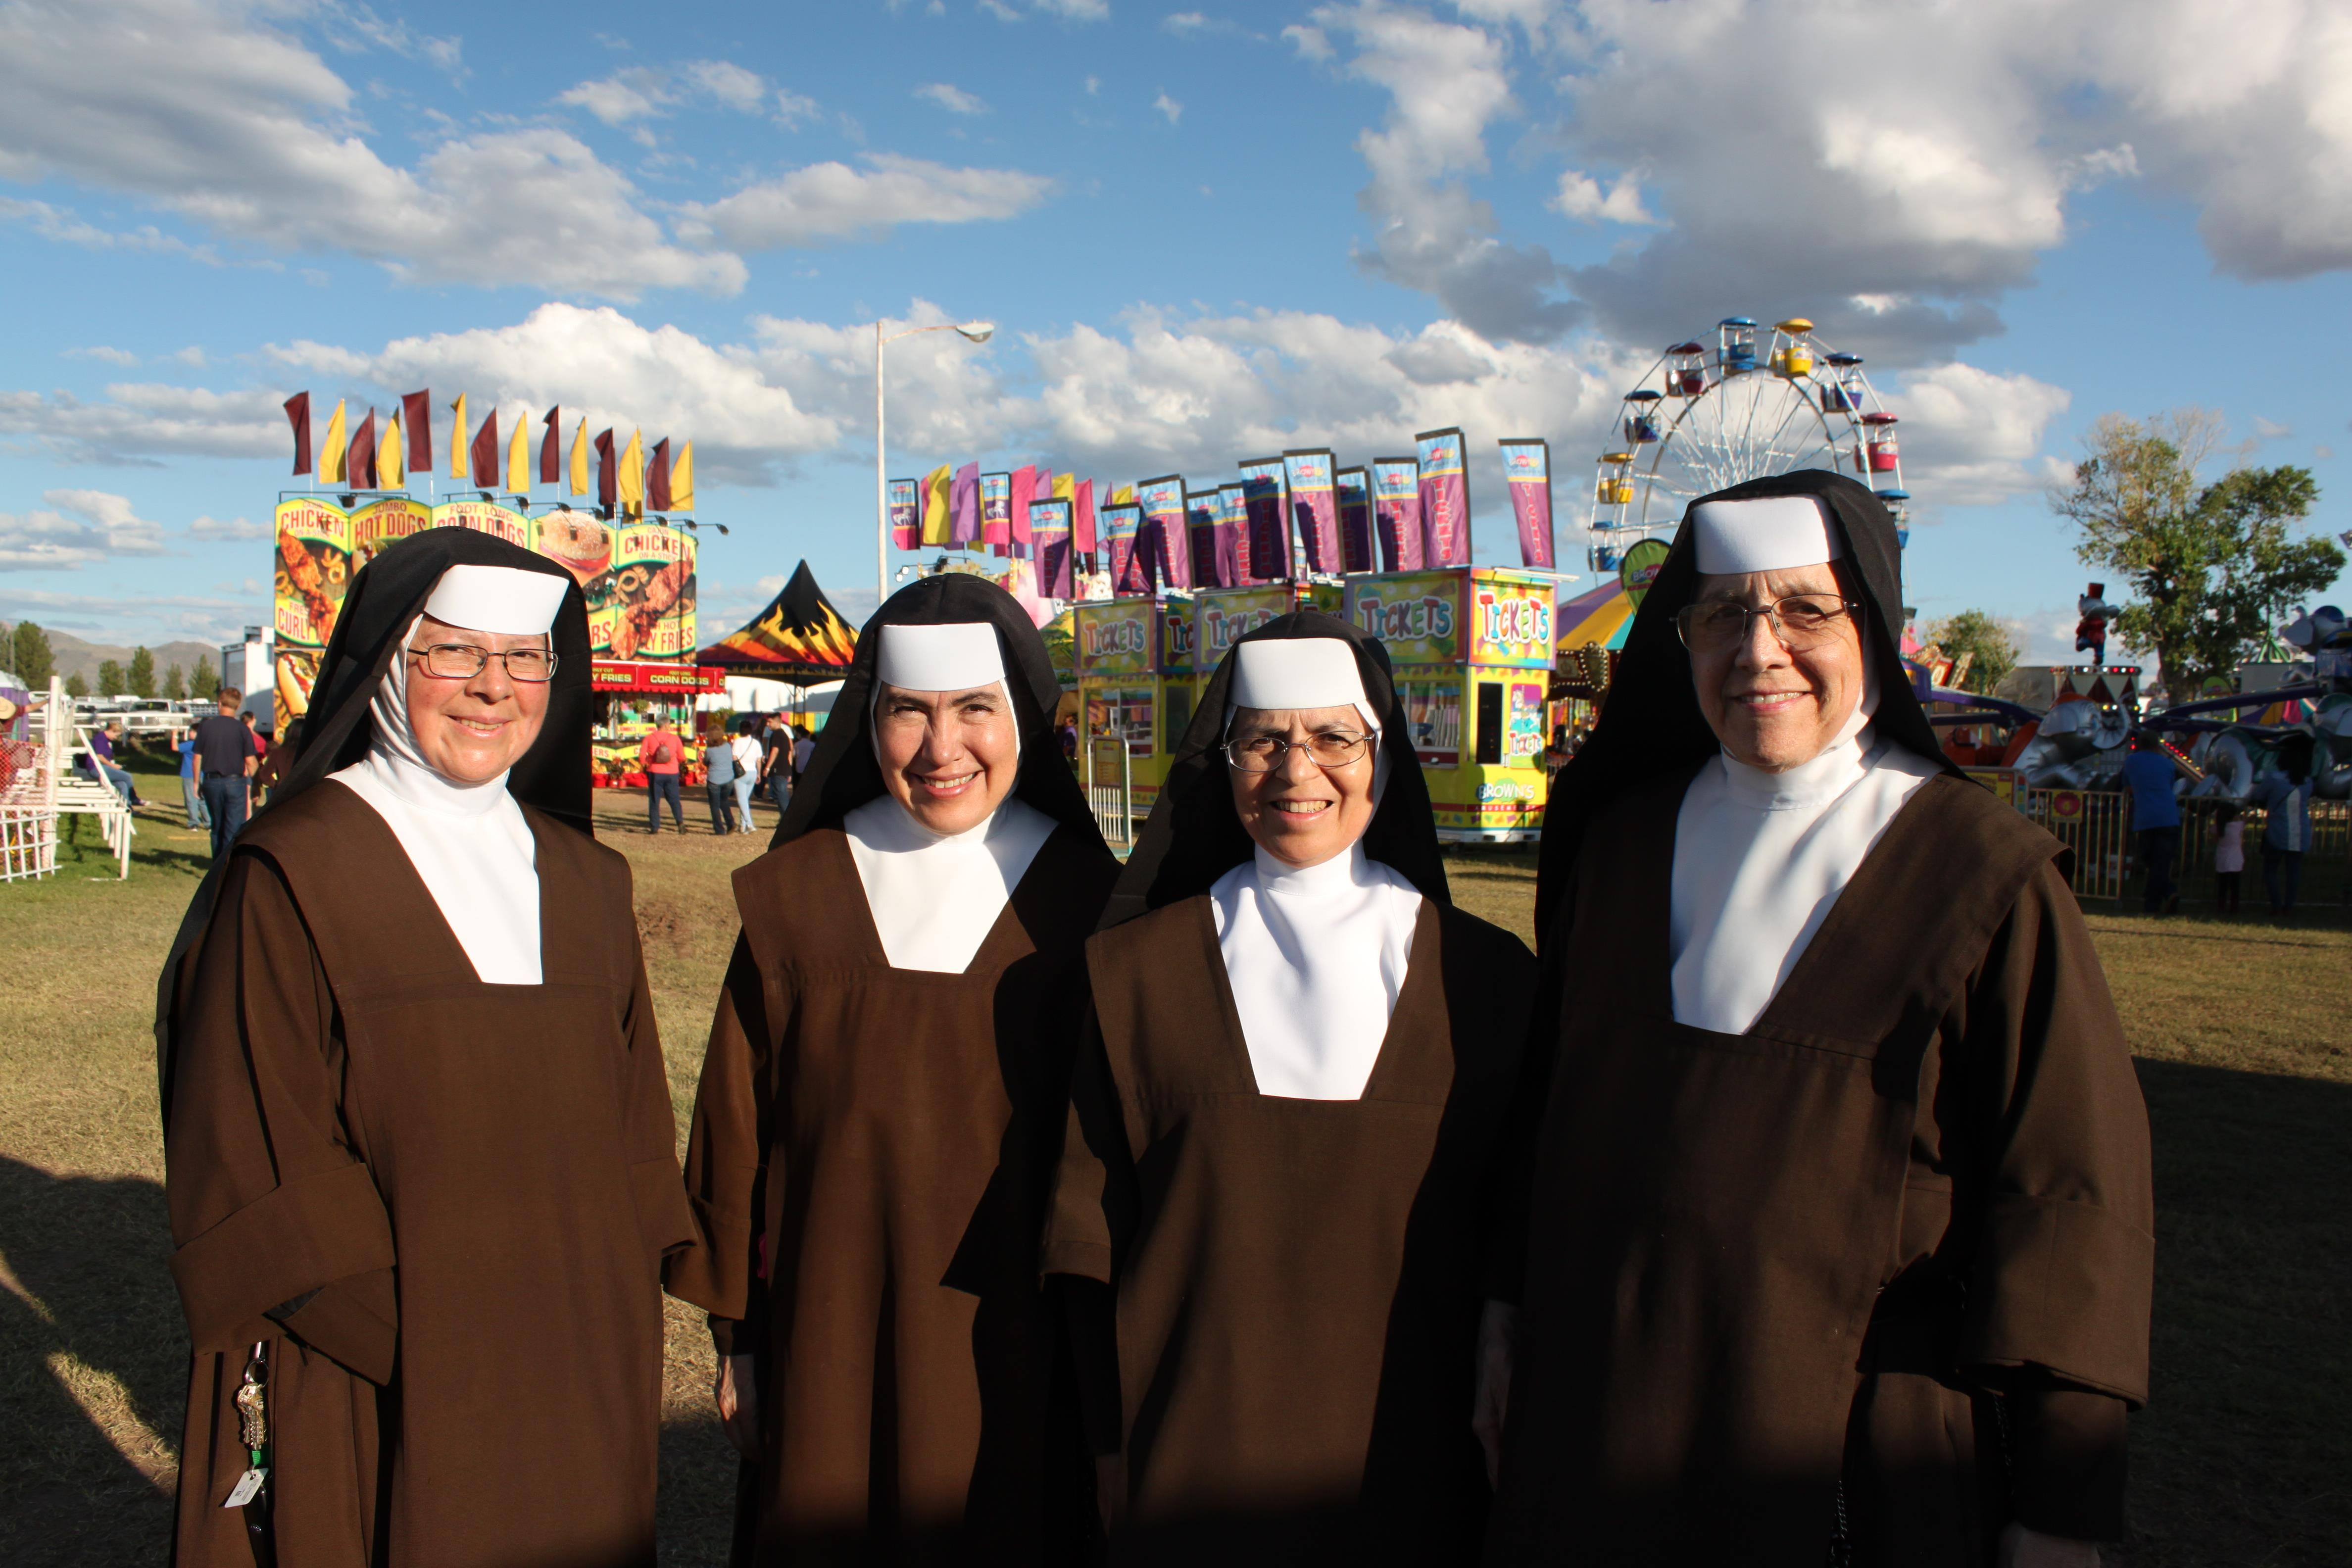 Sisters at the County Fair